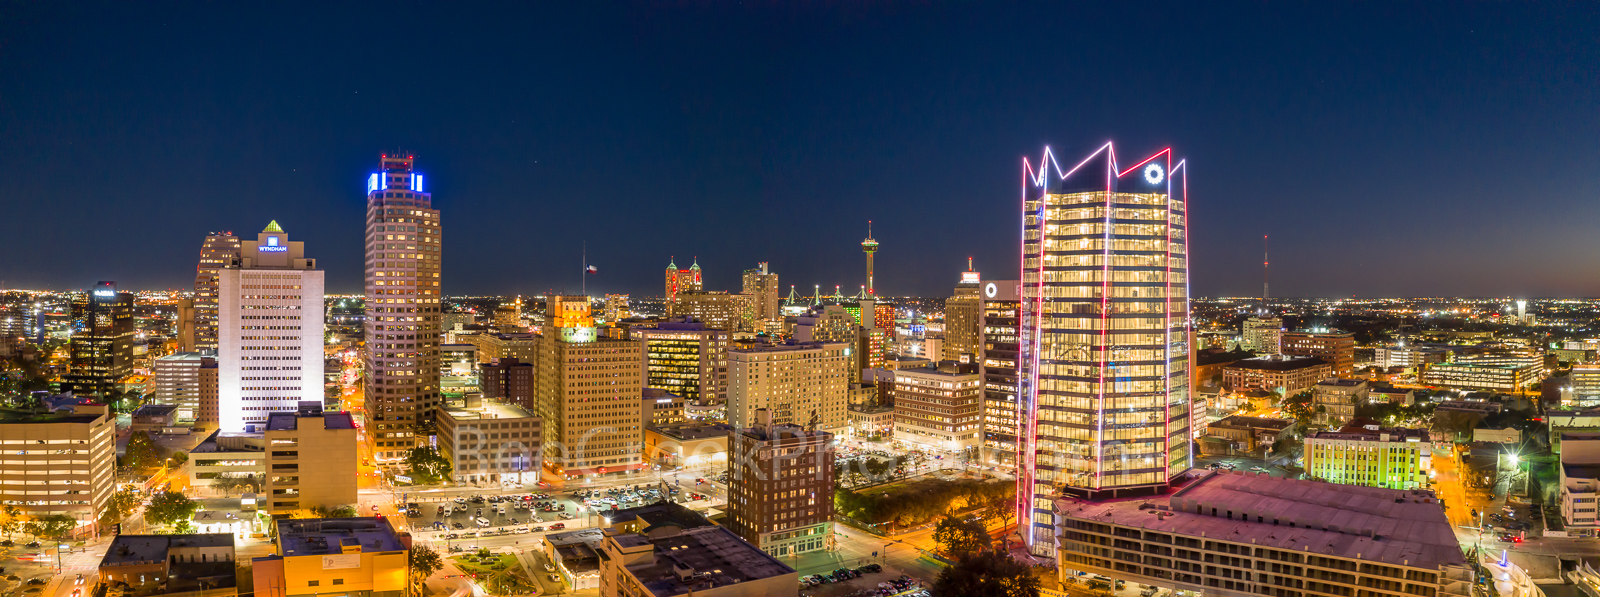 San Antonio Skyline, Night, Panorama, pano, Frost Tower, Marriott, Grand Hyatt, Tower of the Americas, hemisphere, drury hotel, downtown, San Antonio, texas, , Frost Tower, Frost, building, cityscape,